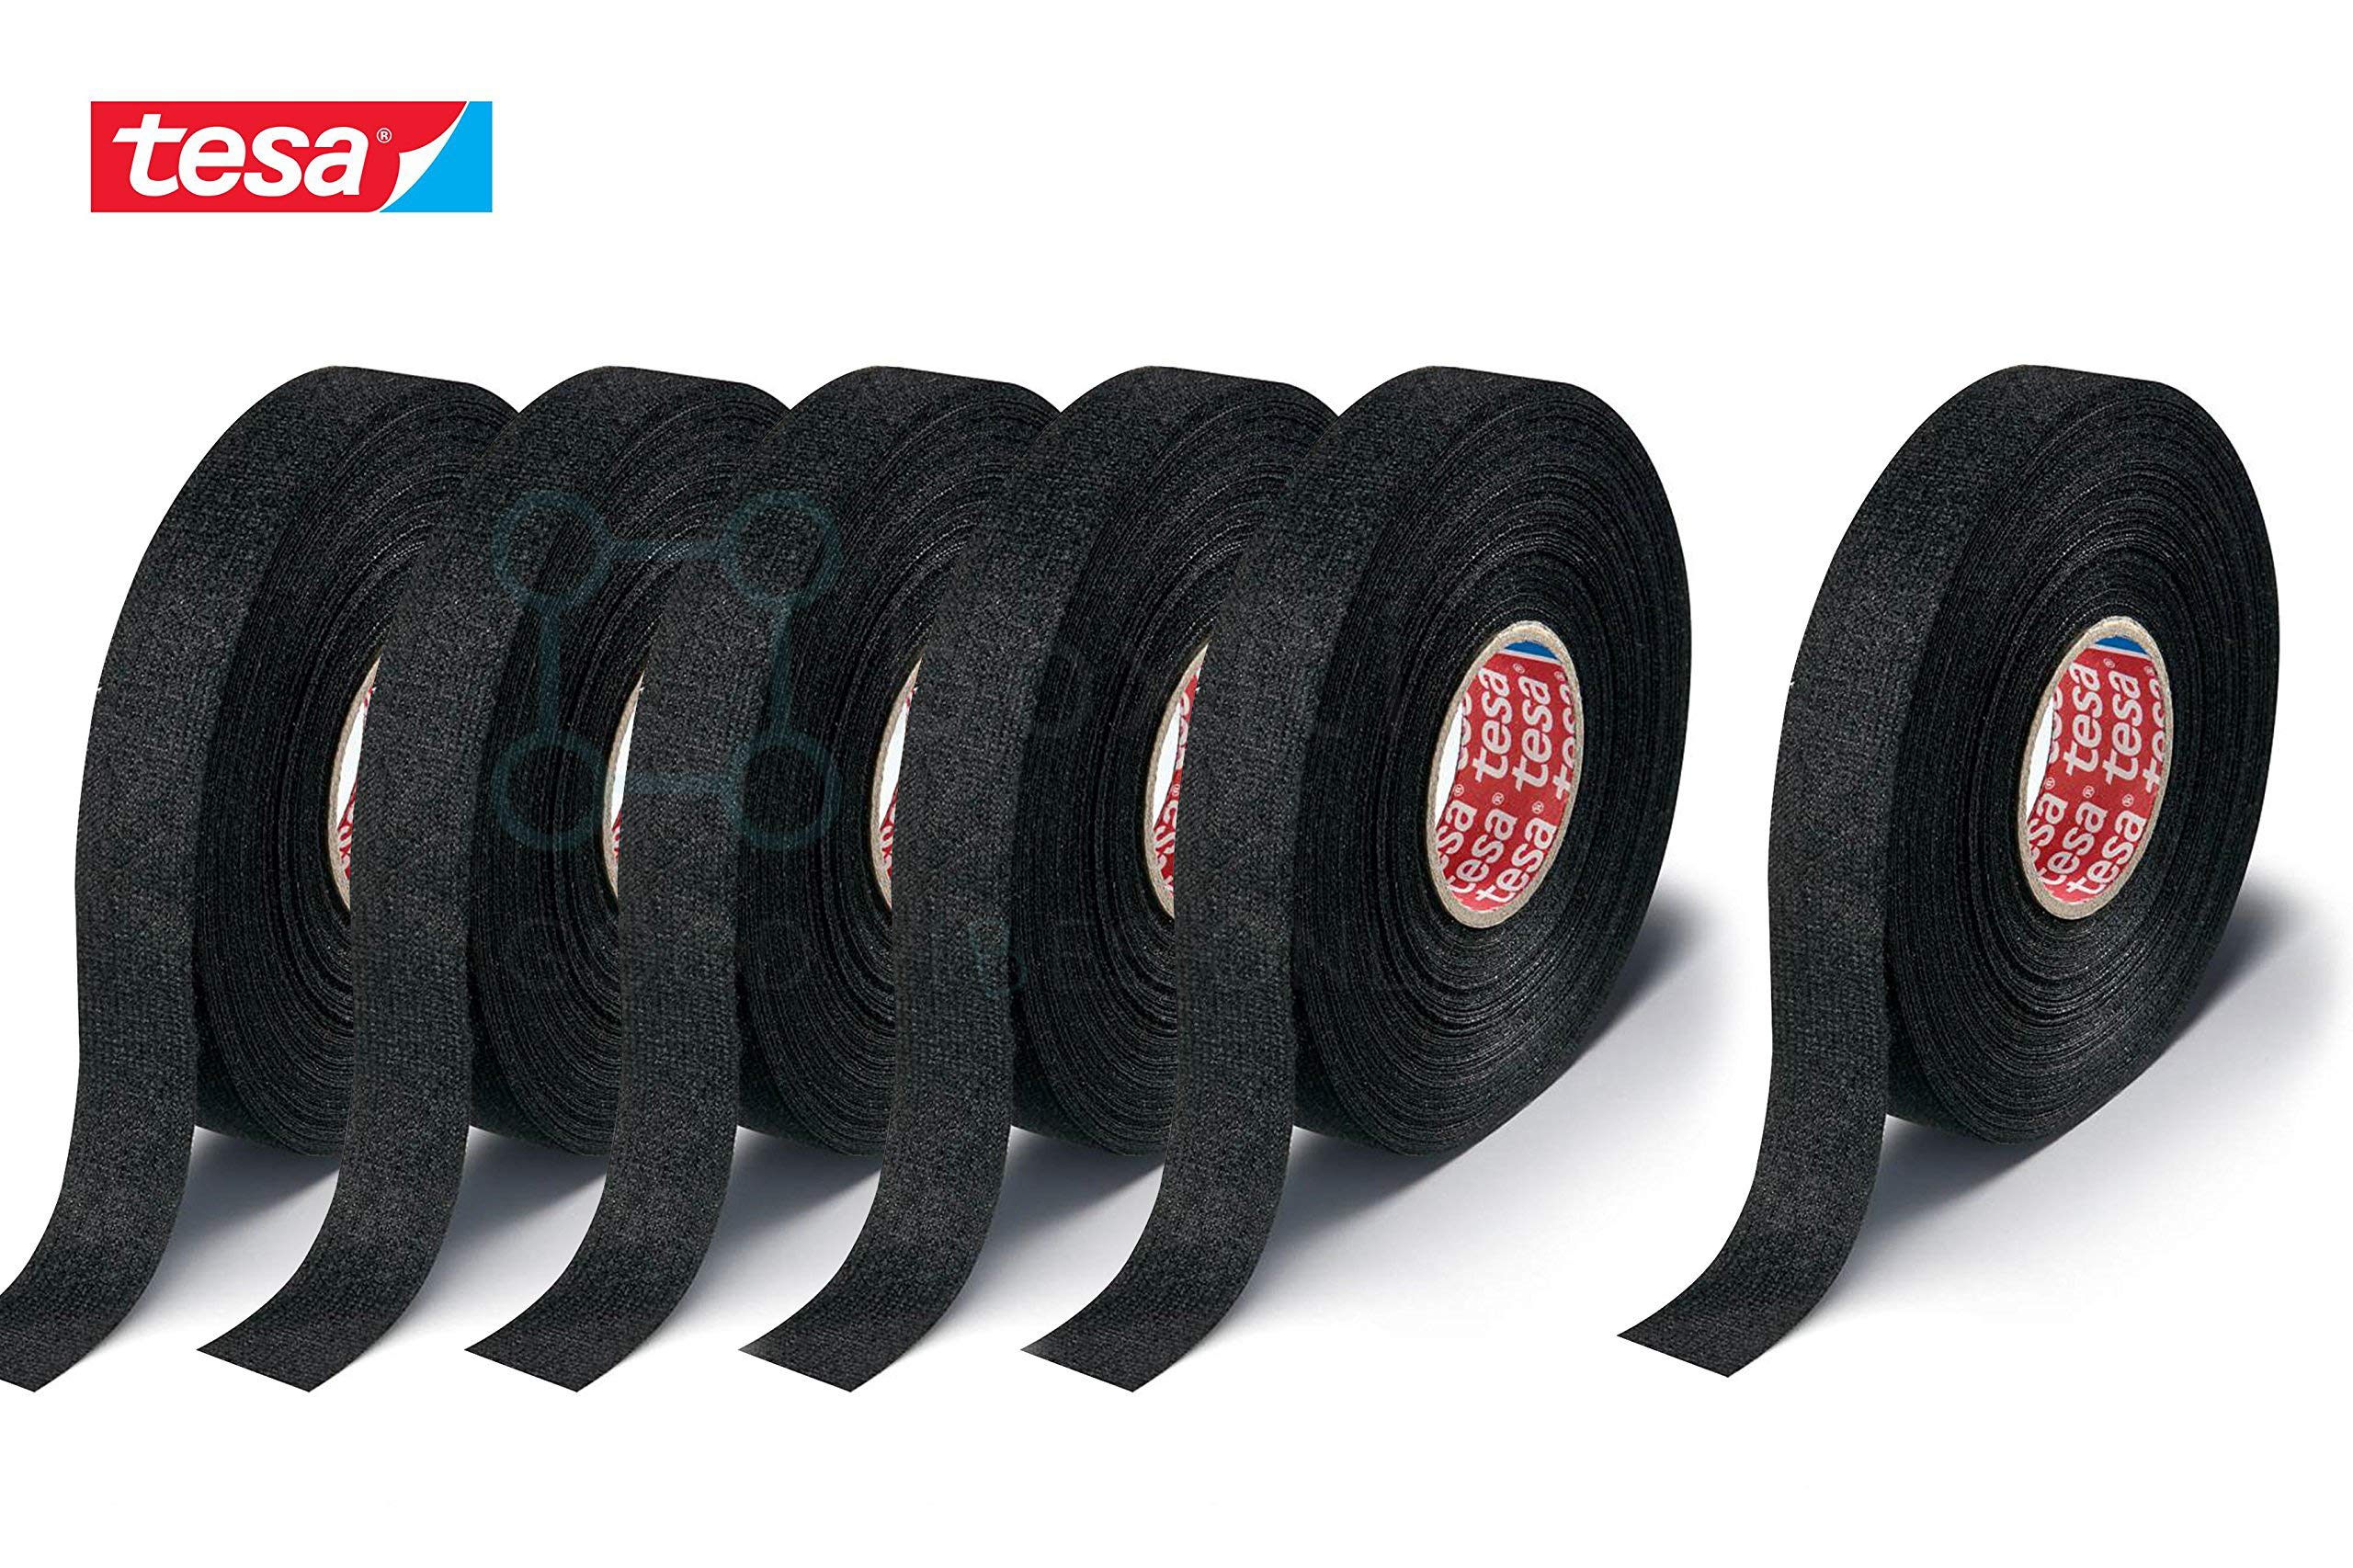 Boxiti set of 6 pcs Tesa 51608 Black Fuzzy Fleece Interior Wire Loom Harness Tape 19 mm X 15 Meters